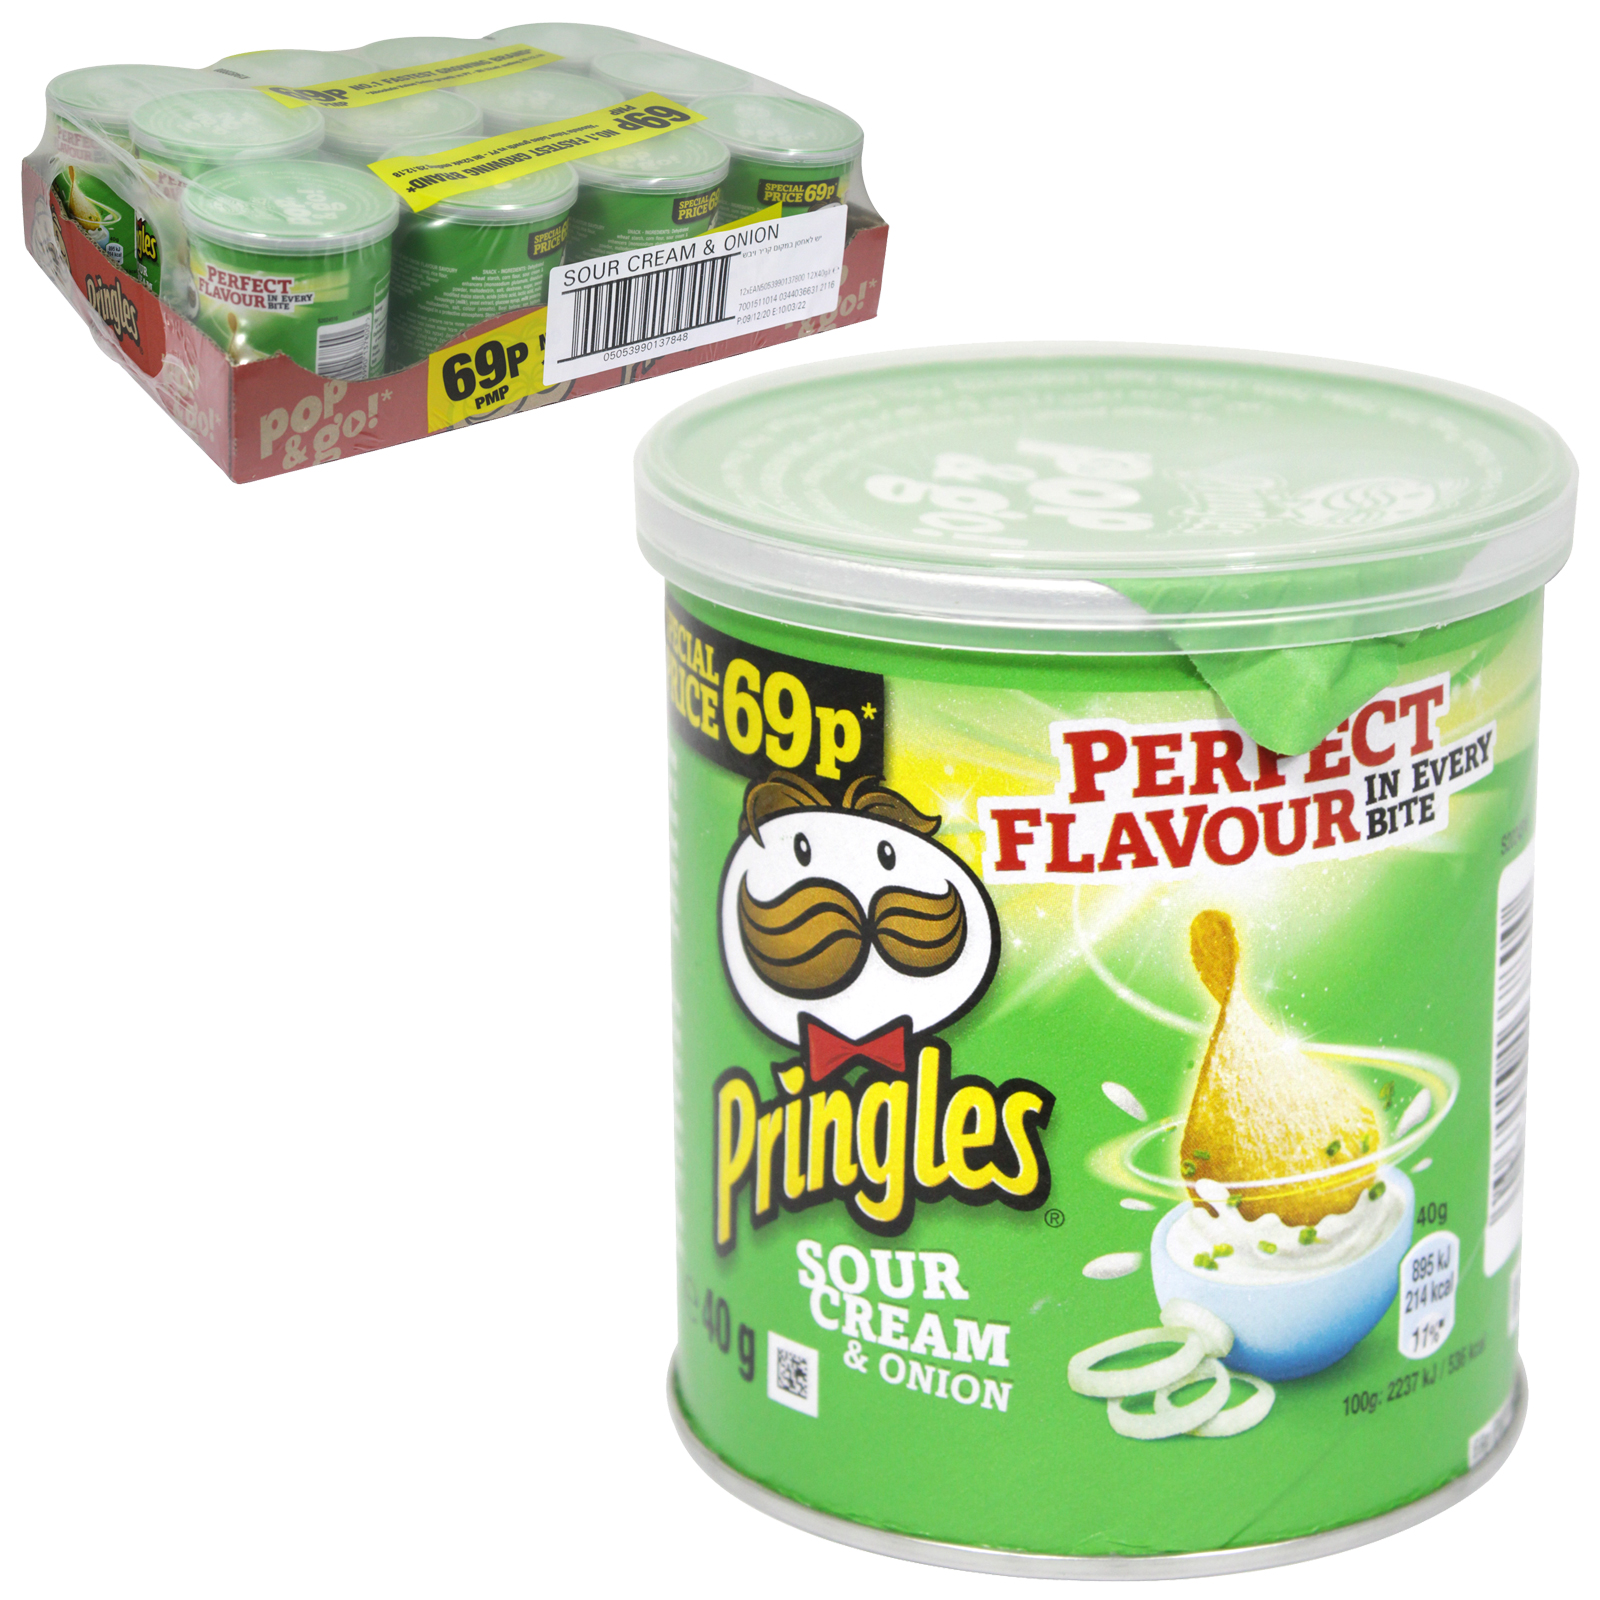 PRINGLES 40GM SOUR CREAM & ONION PM 69P X12